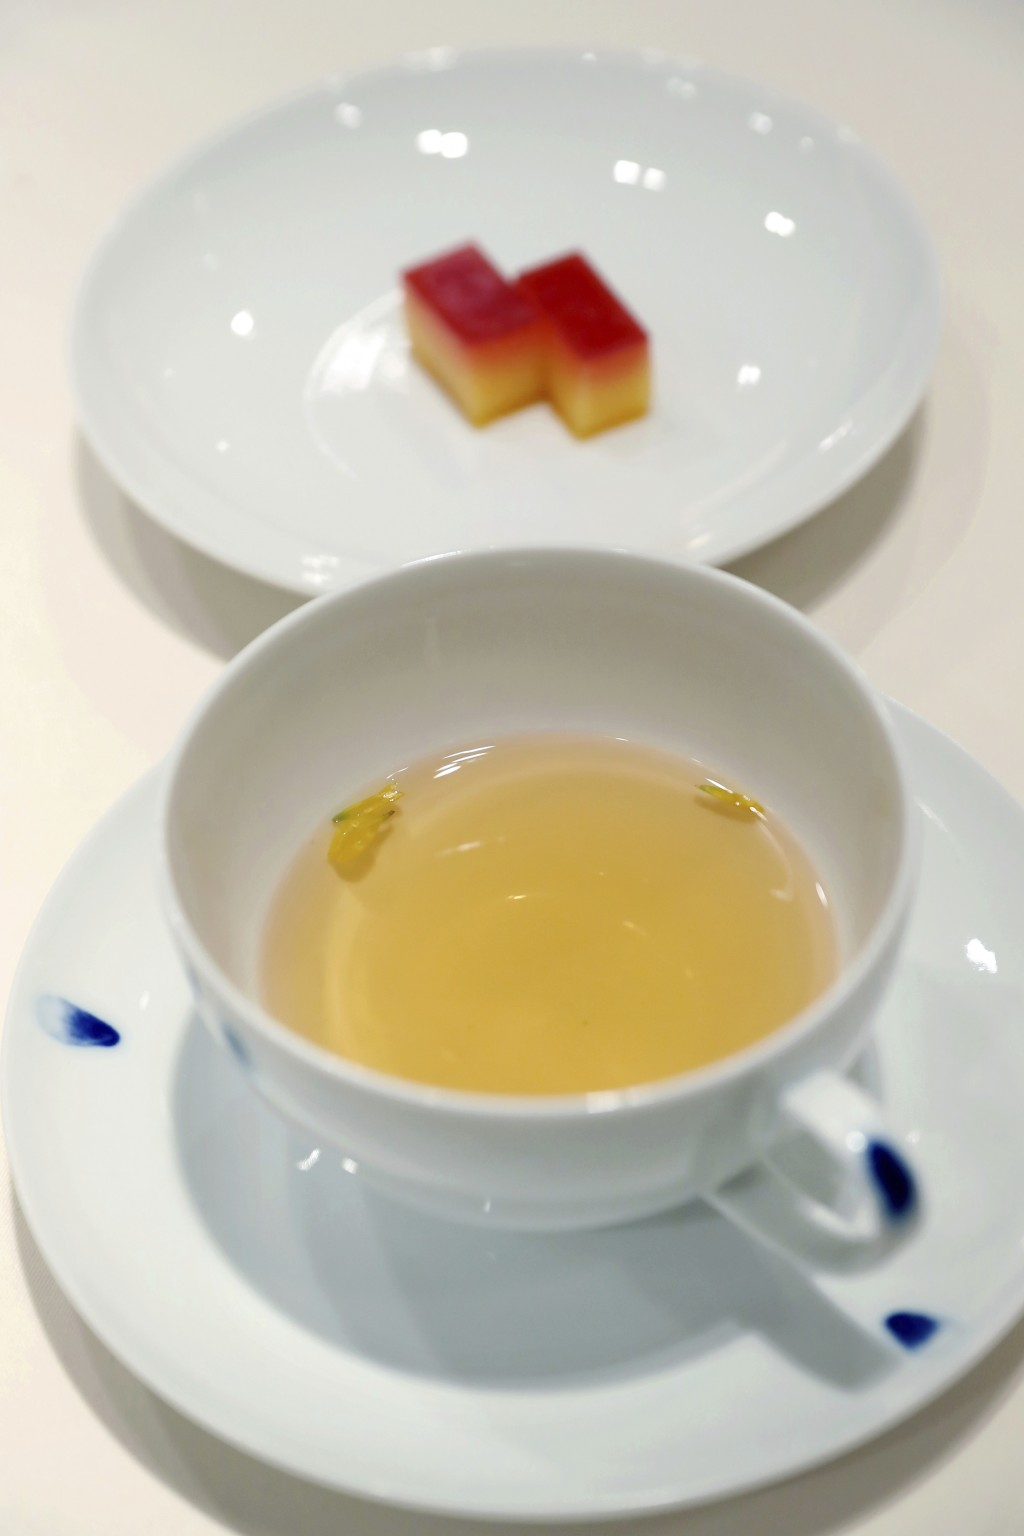 This undated photo provided by South Korea Presidential Blue House on Tuesday, April 24, 2018, shows tea and desserts made from citrus from South Kore...